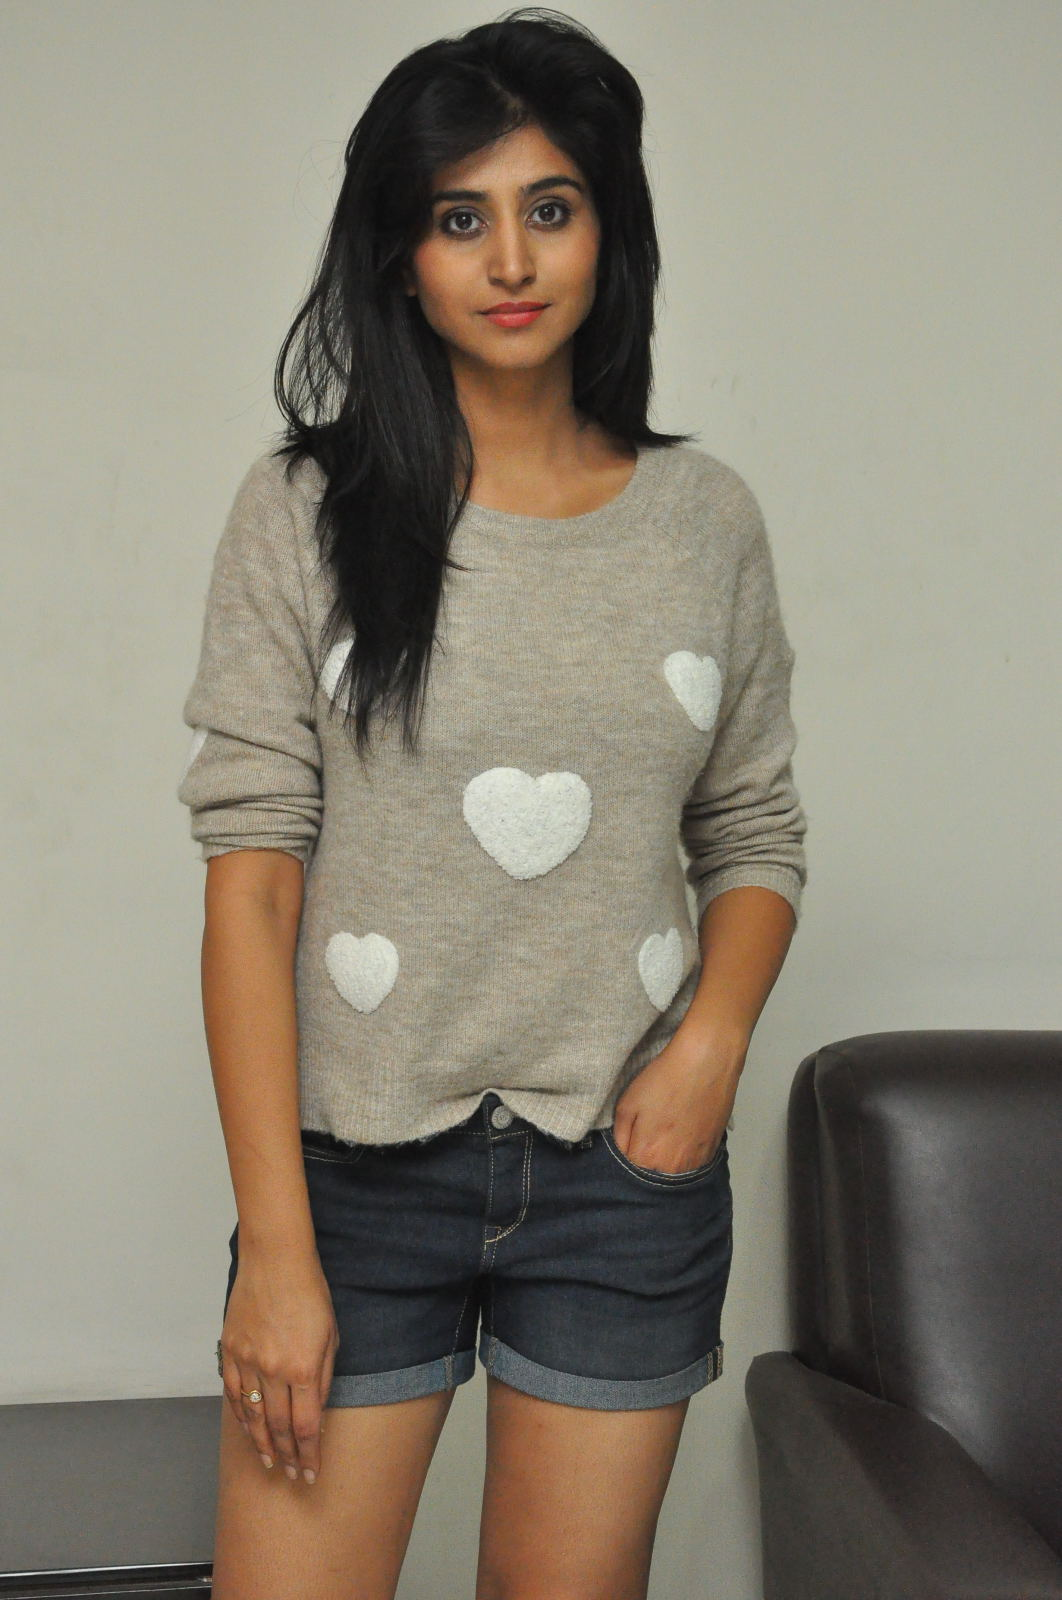 Shamili new cute photos gallery-HQ-Photo-6